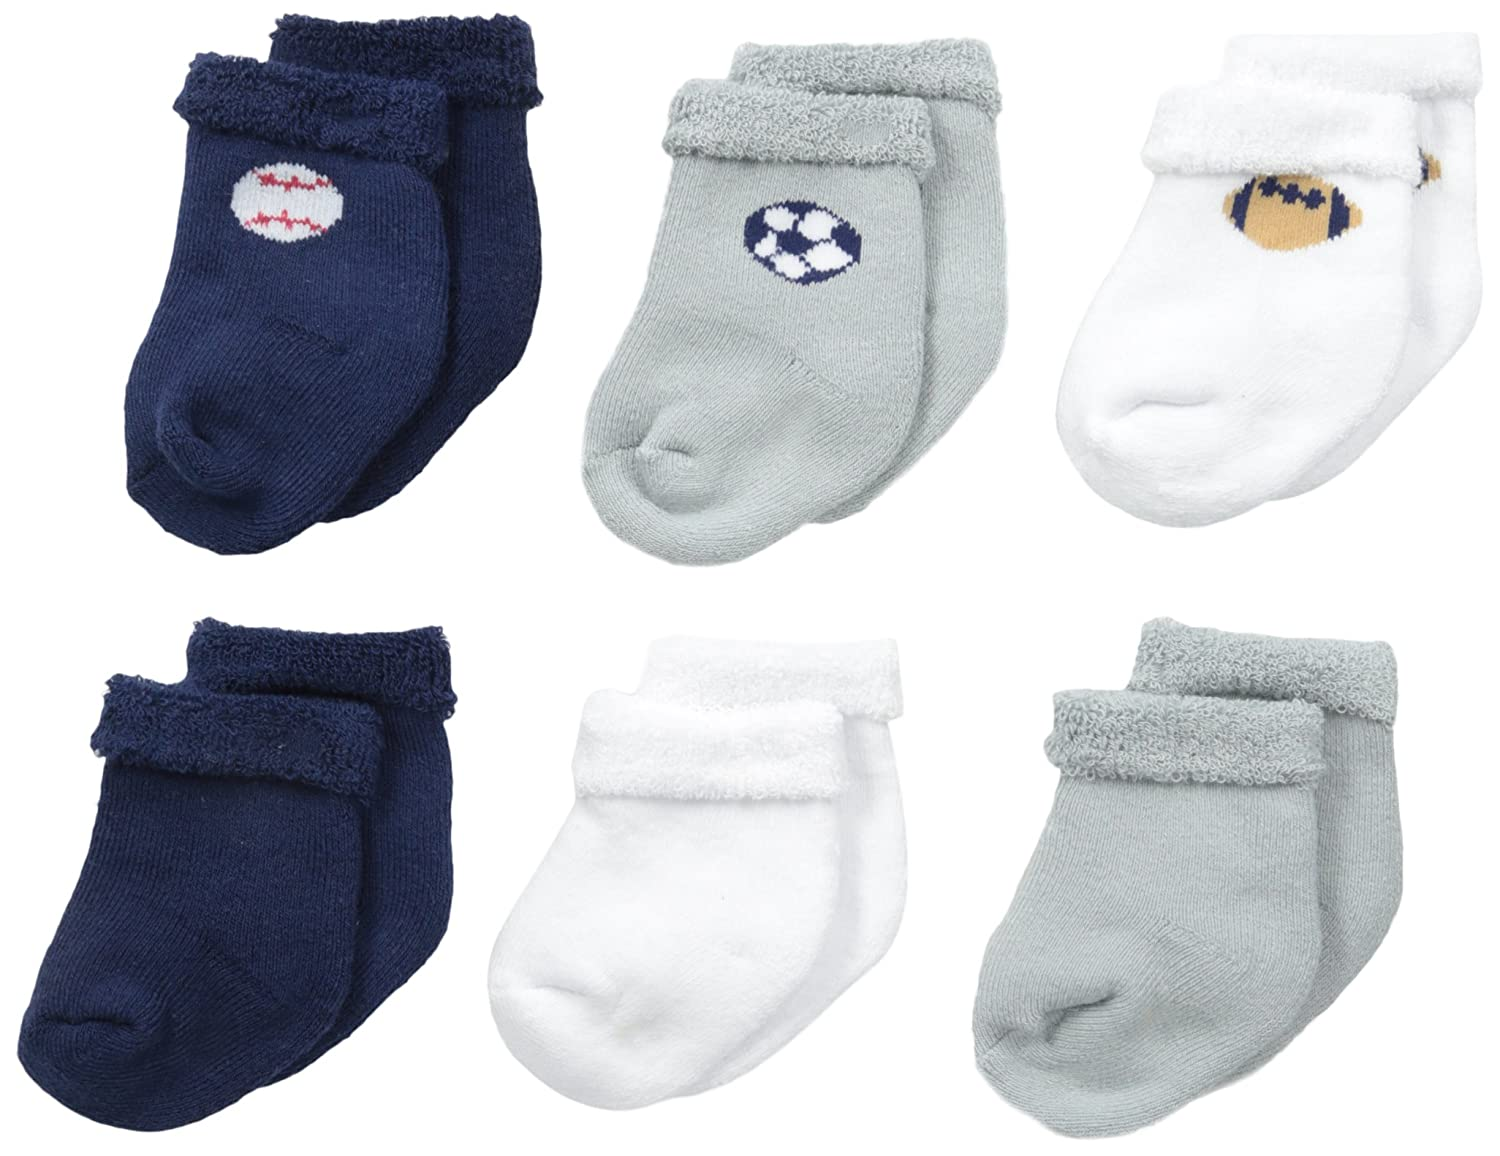 Gerber Baby Boys' 6 Pack Sock Gerber Children' s Apparel 93047616AB17